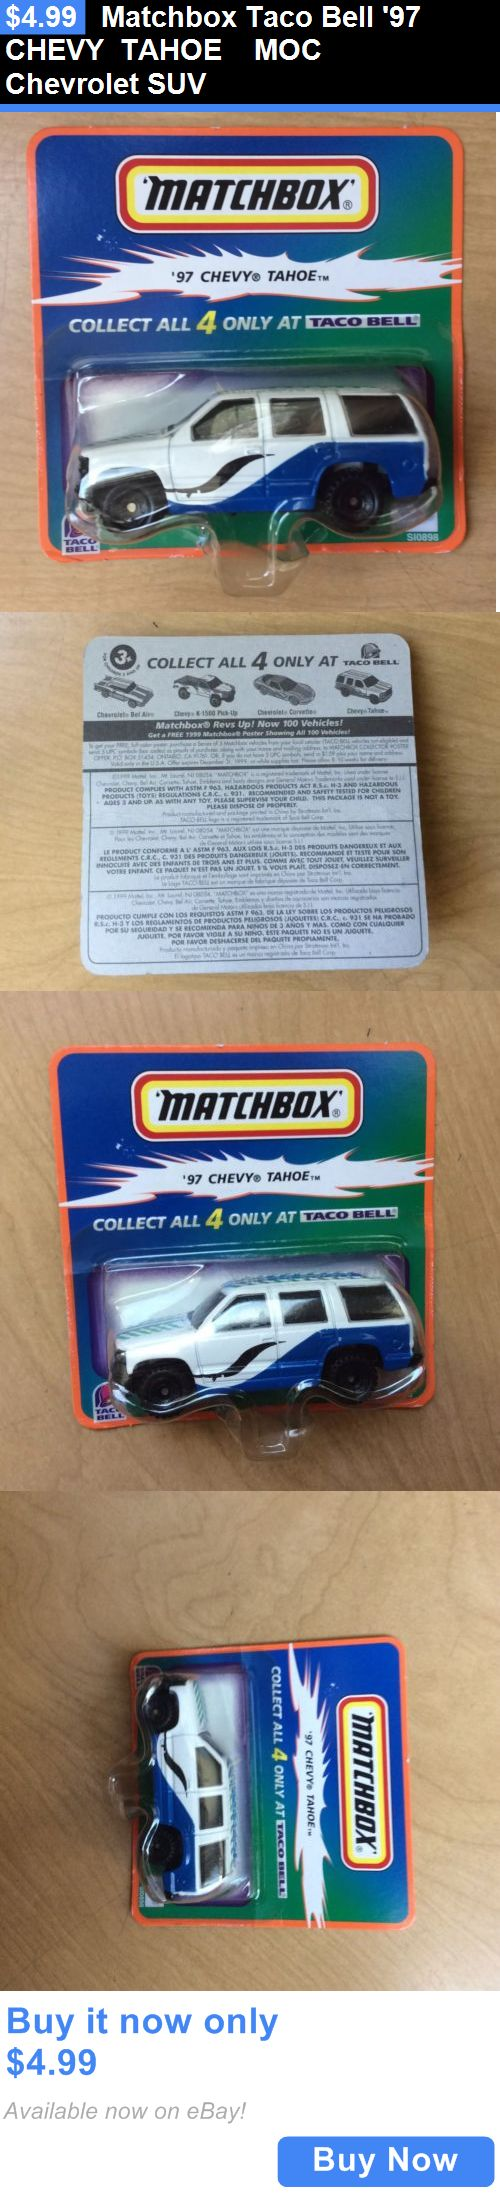 SUVs: Matchbox Taco Bell 97 Chevy Tahoe Moc Chevrolet Suv BUY IT NOW ONLY: $4.99